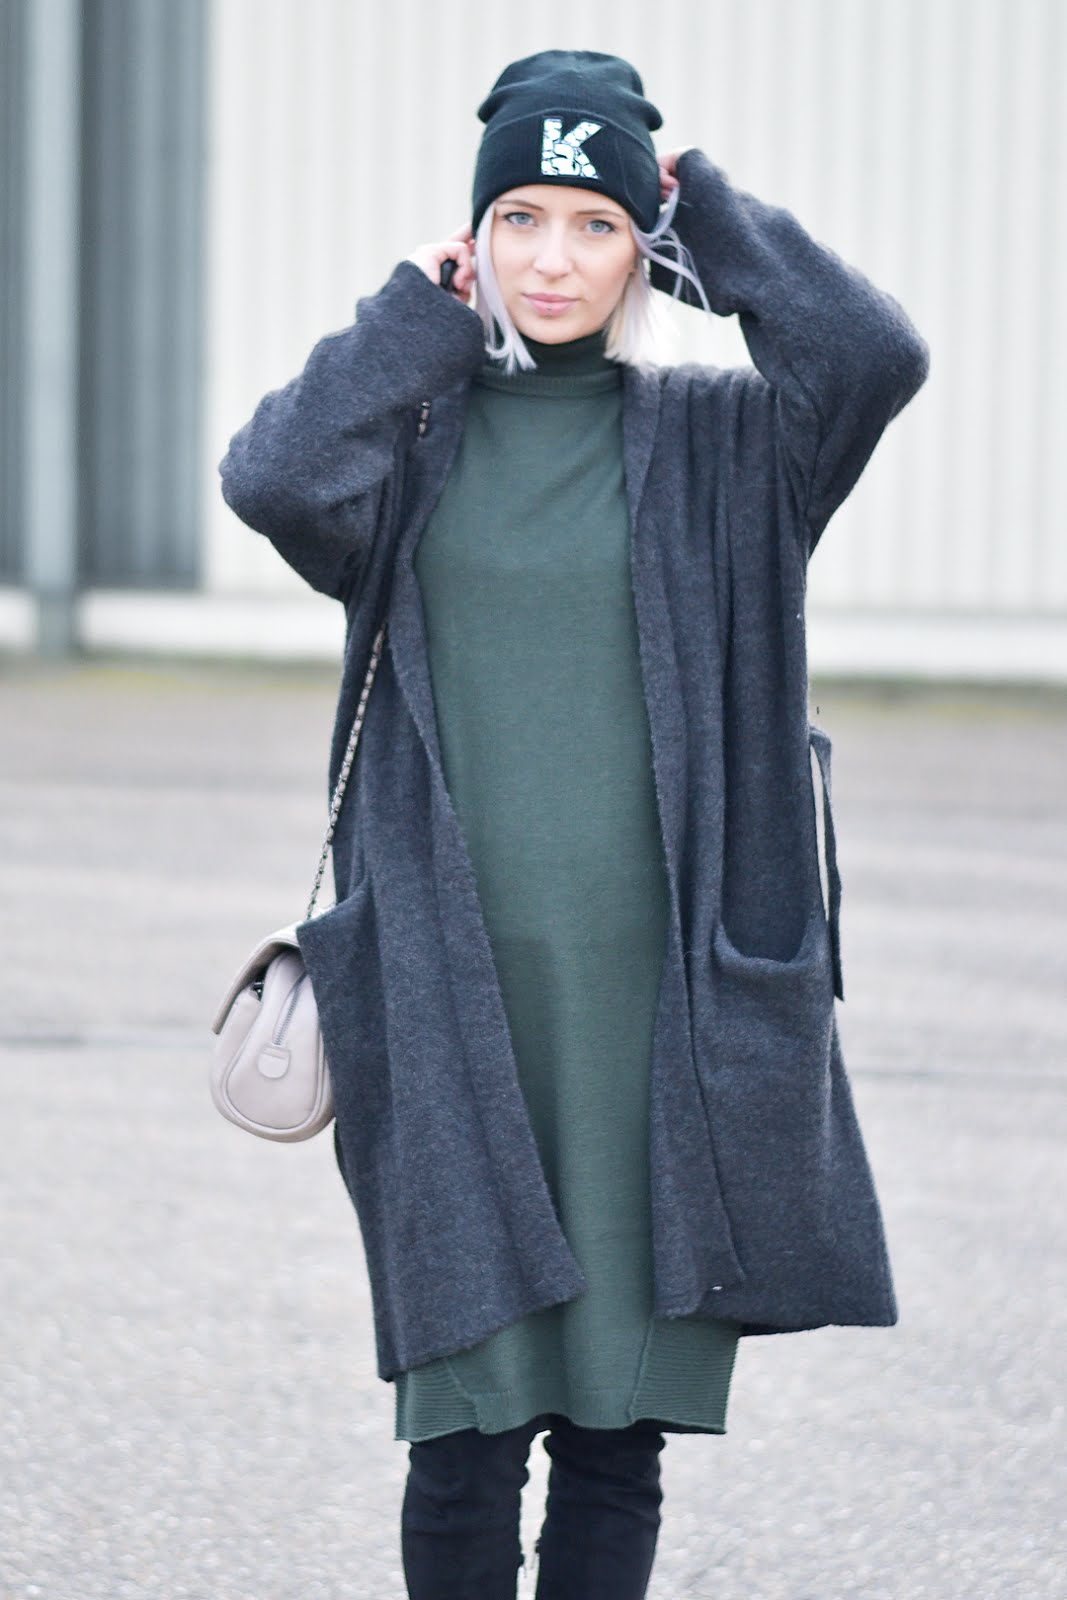 Asos jumper dress, maxi dress, long cardigan, wool, overknee boots, chunky, sacha, karl lagerfeld hat, marc b bag, knightbridge, street style, inspiration